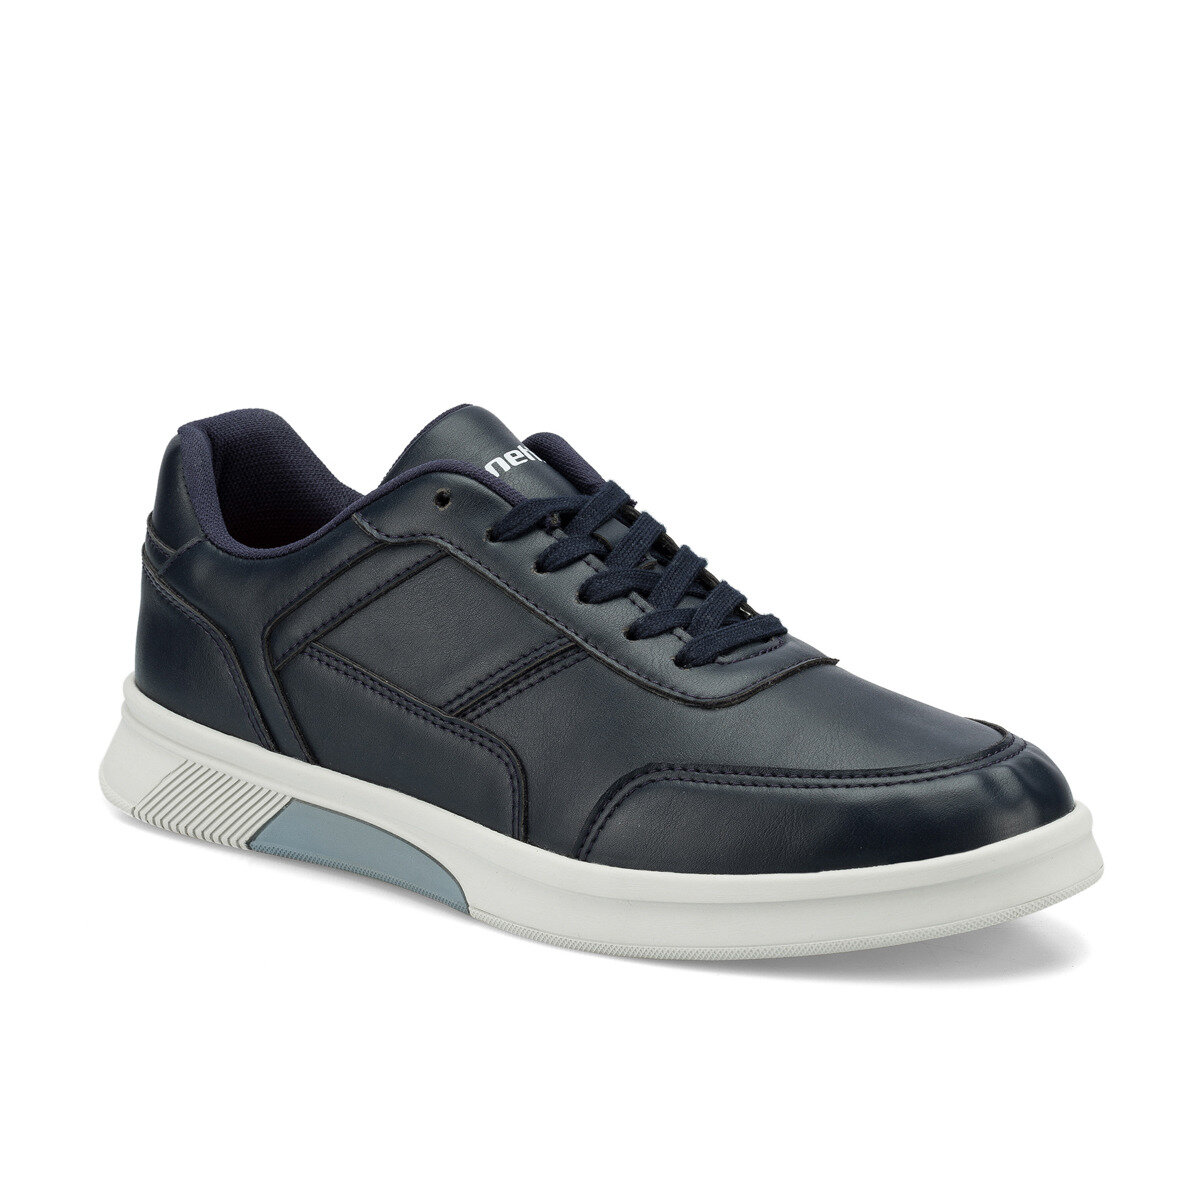 FLO WAREN Navy Blue Men 'S Sneaker Shoes KINETIX